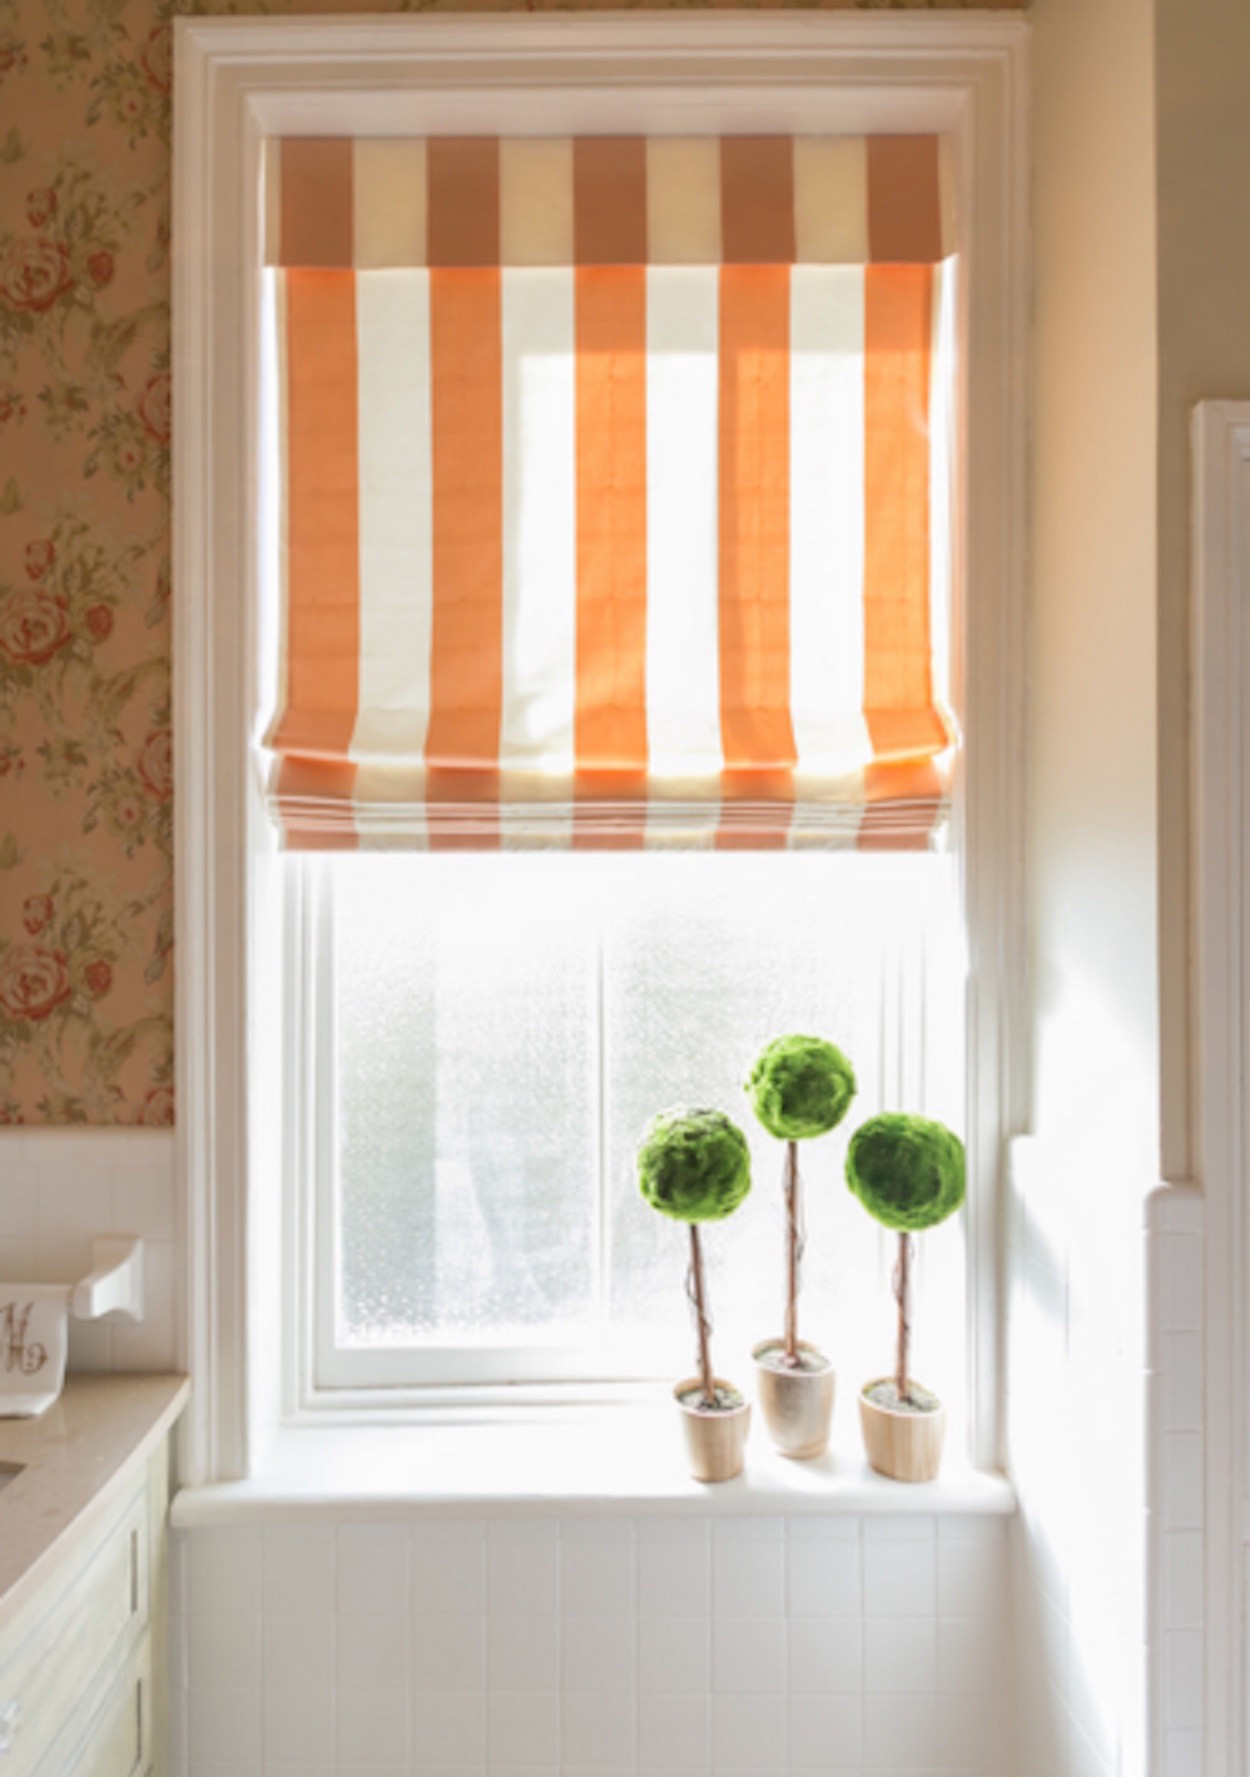 Small Bathroom Window  7 Different Bathroom Window Treatments You Might Not Have